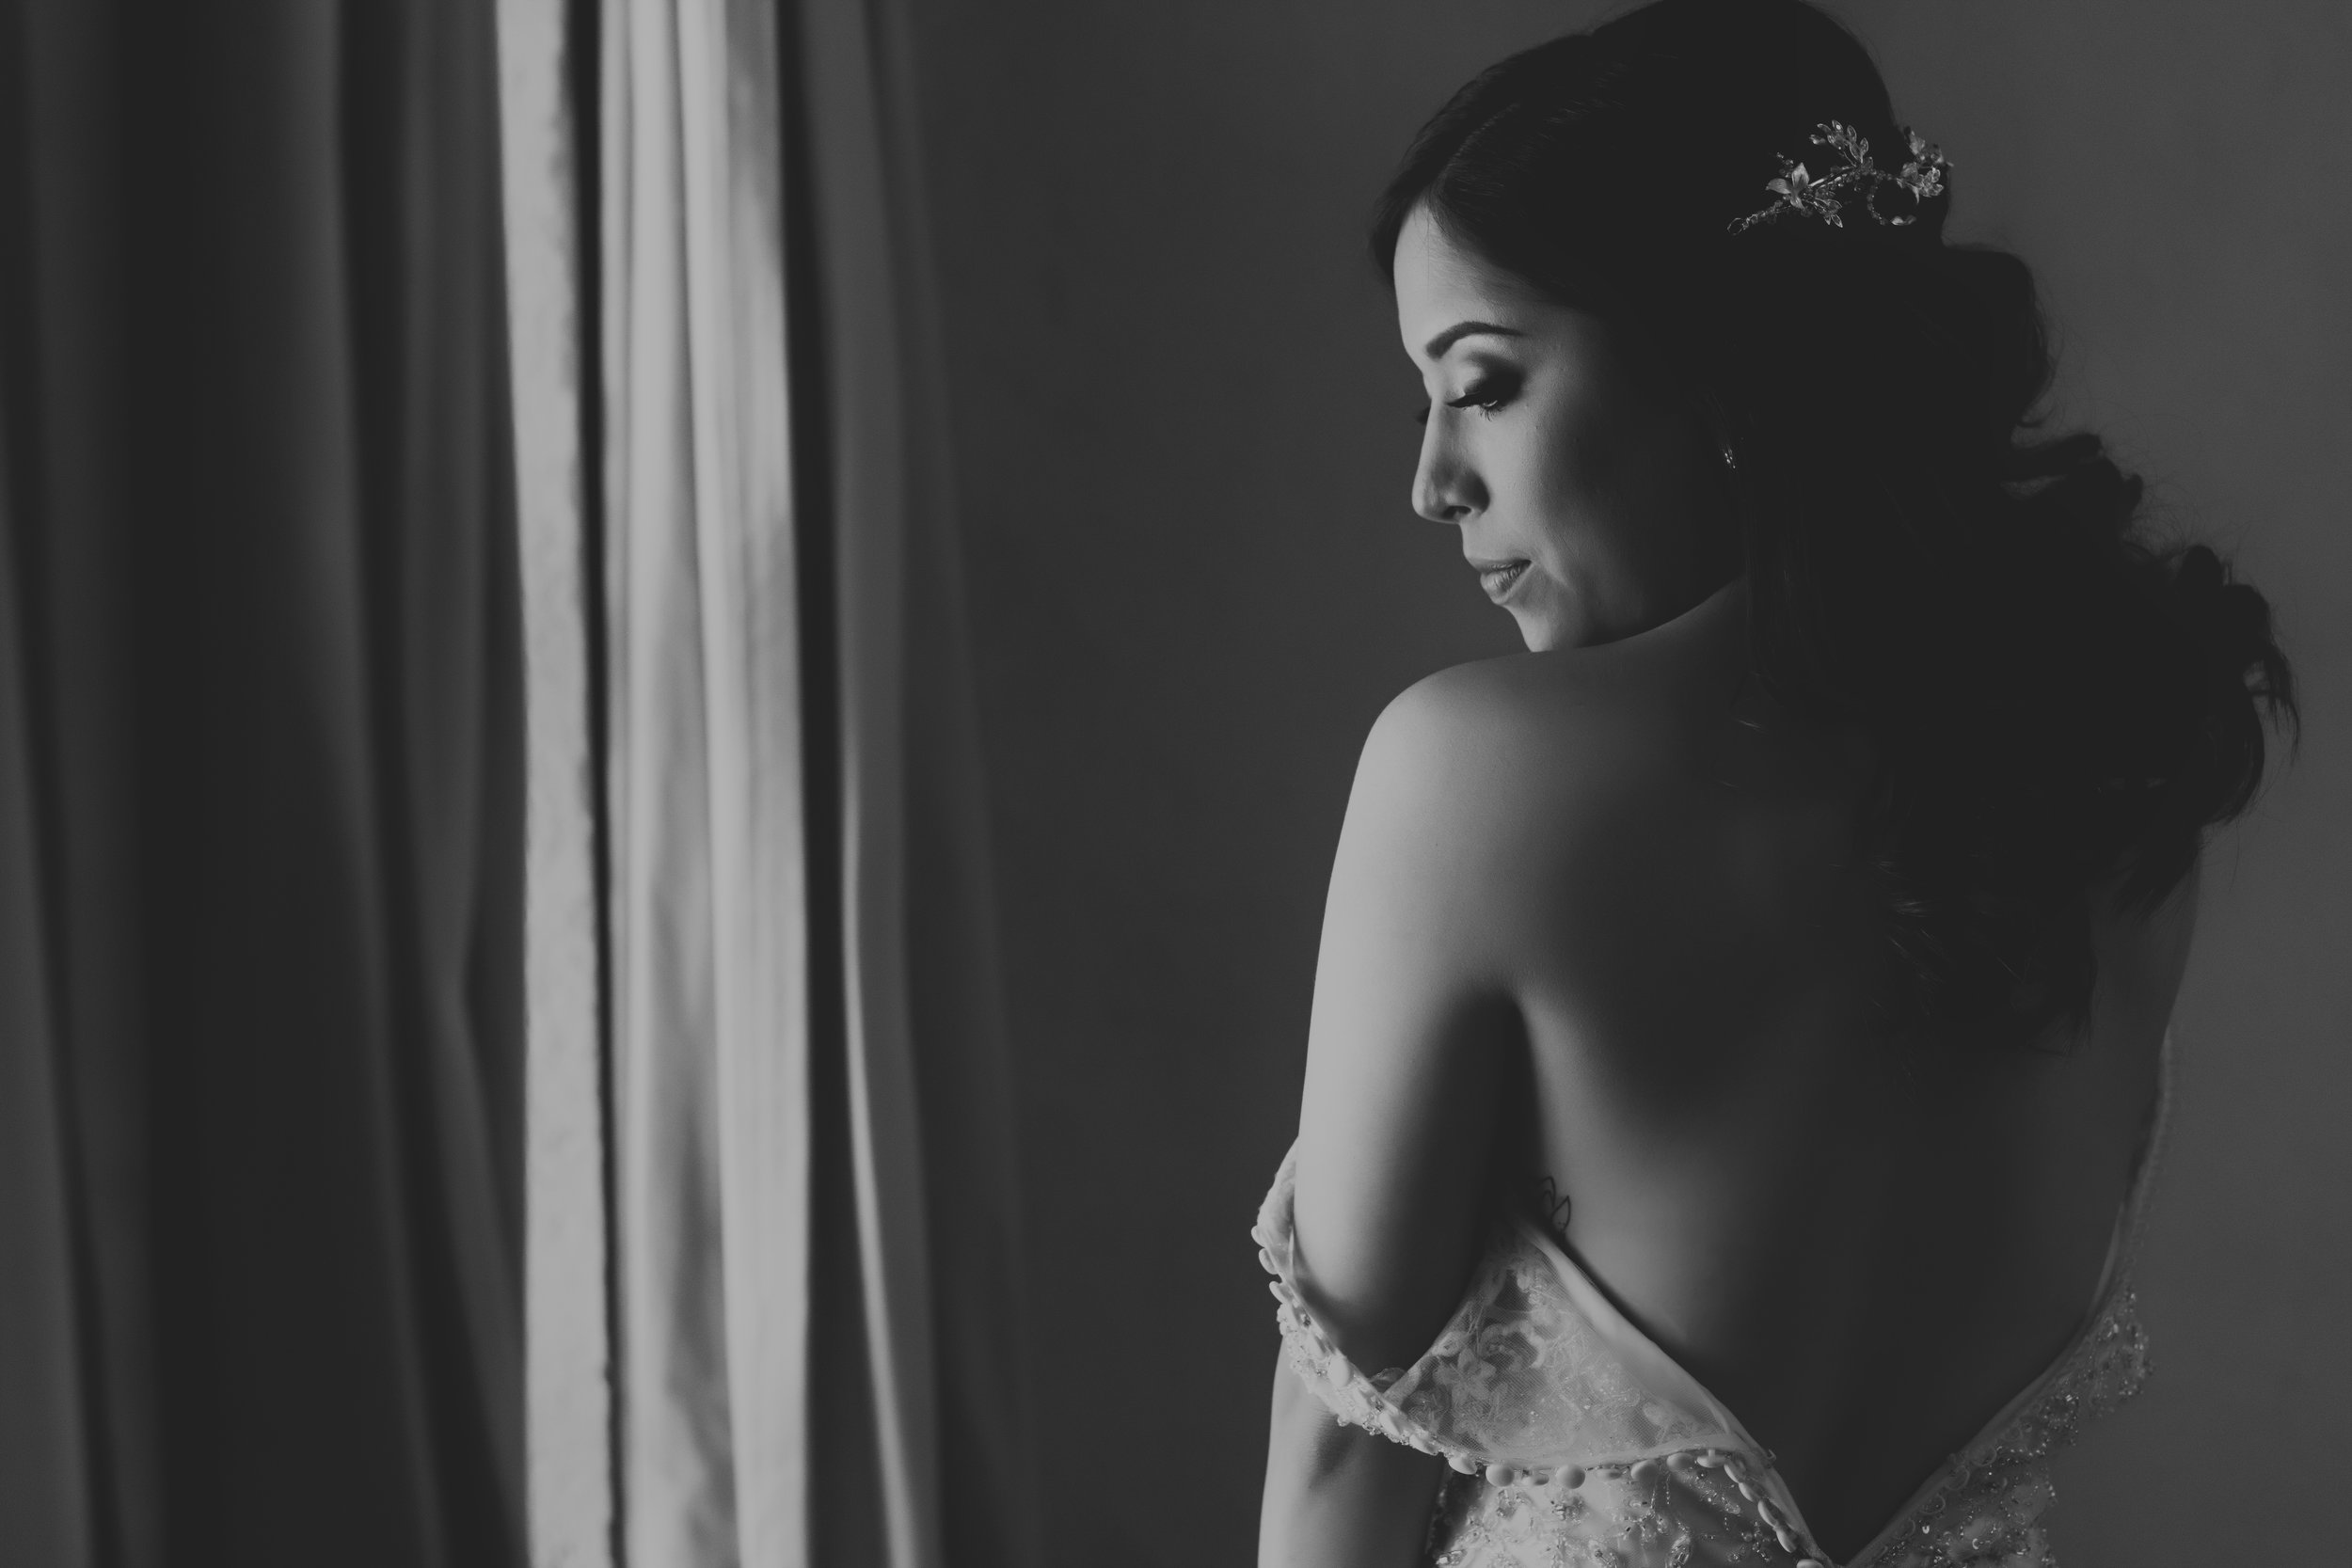 WEDDING PACK 3 - Full Time (max 12 hrs), E- Session, Online Gallery, Slideshow,400-600 Edited Pictures,15 fine-art printings, 25 x 35 cm Photobook $35,500 mx